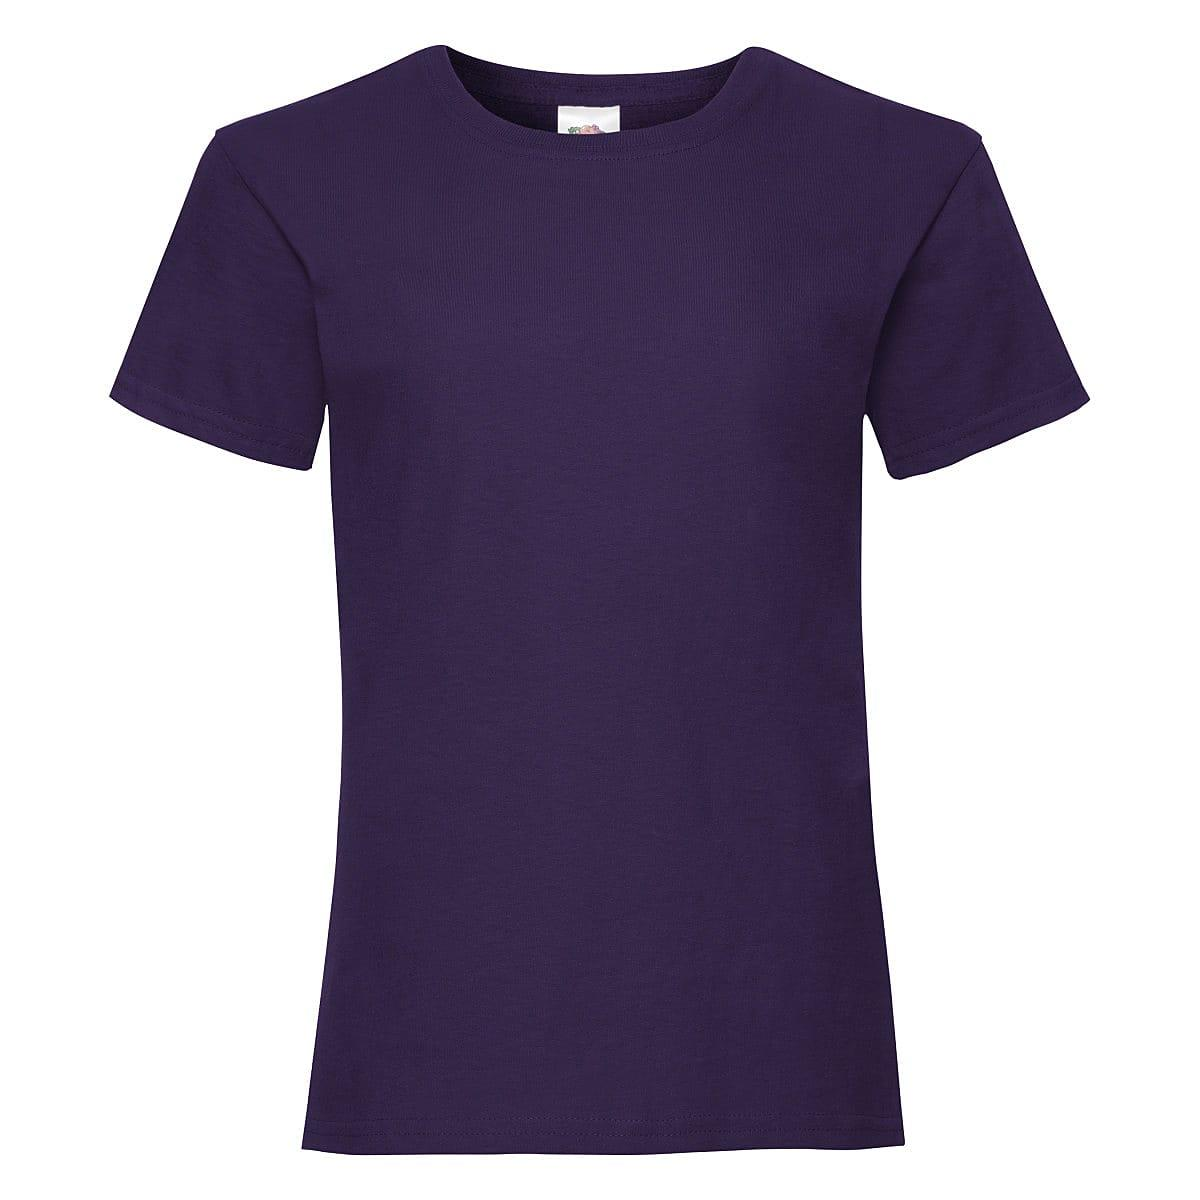 Fruit Of The Loom Girls Valueweight T-Shirt in Purple (Product Code: 61005)